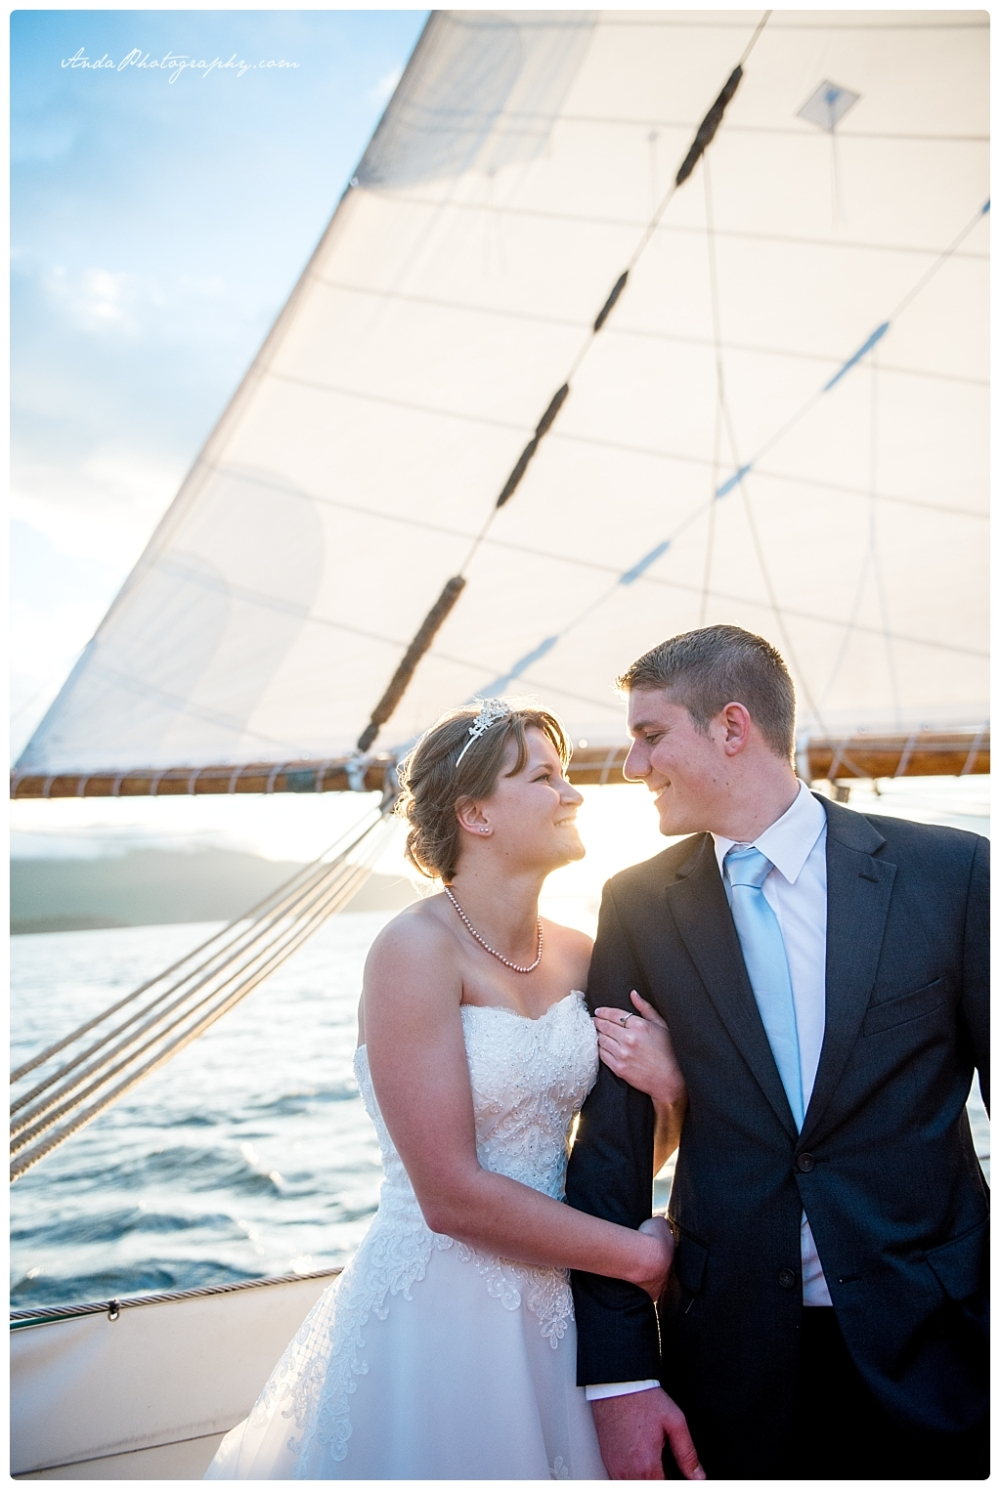 Anda Photography Bellingham wedding photographer seattle wedding photographer Schooner Zodiak Wedding photos_0029